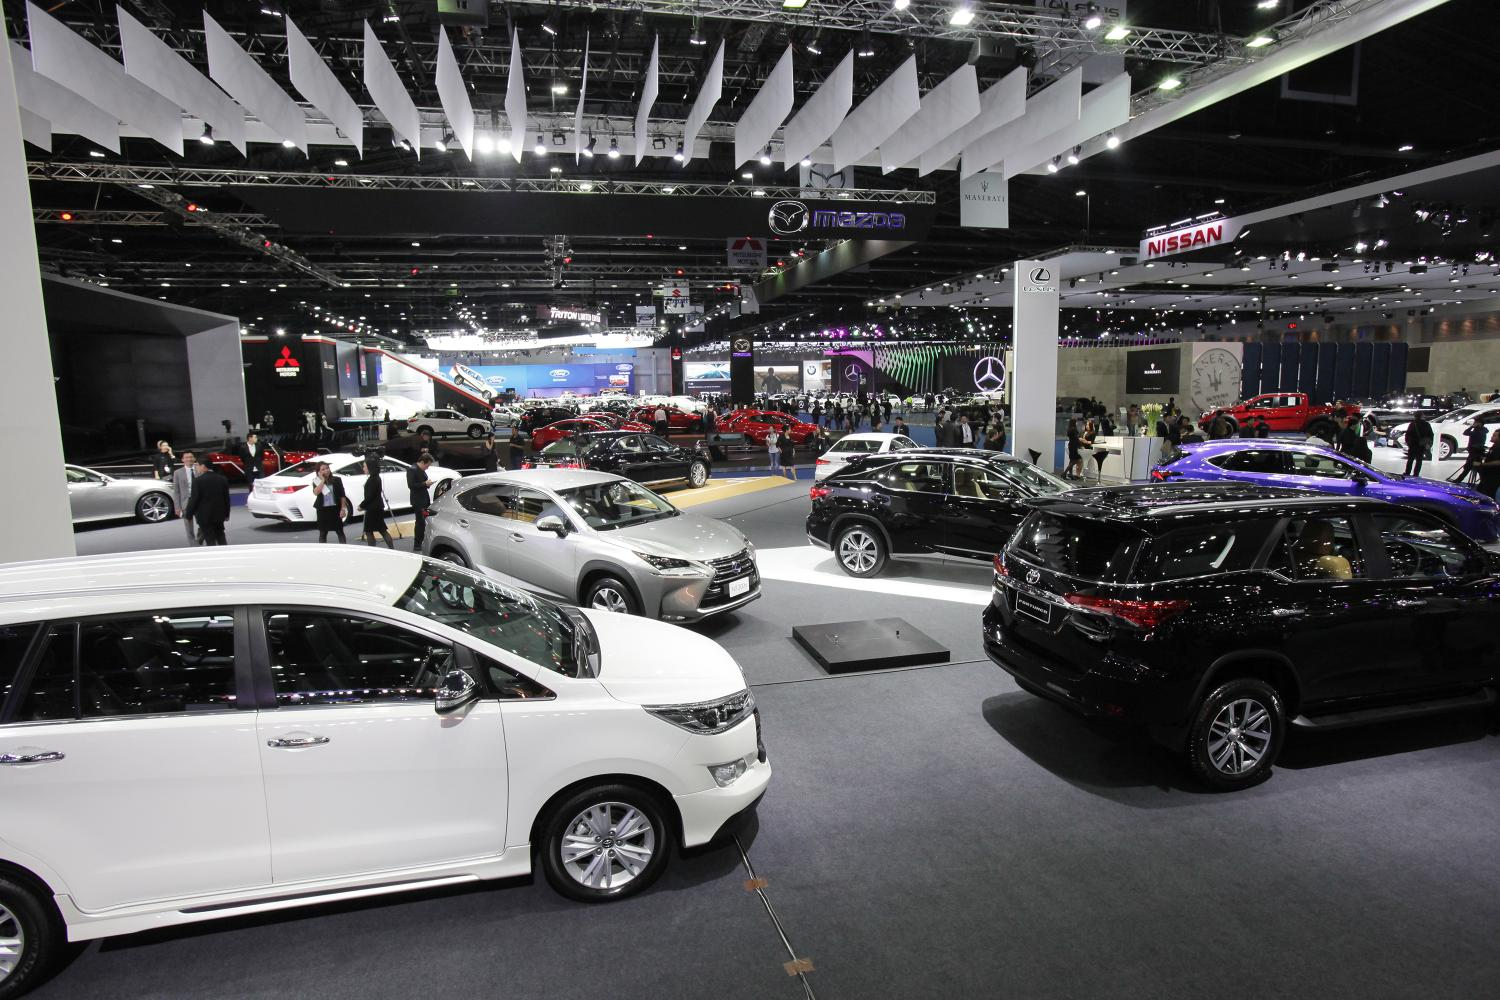 Cars on display at a motor show. The private sector is urging the state to speed up measures to aid car makers. (Bangkok Post photo)